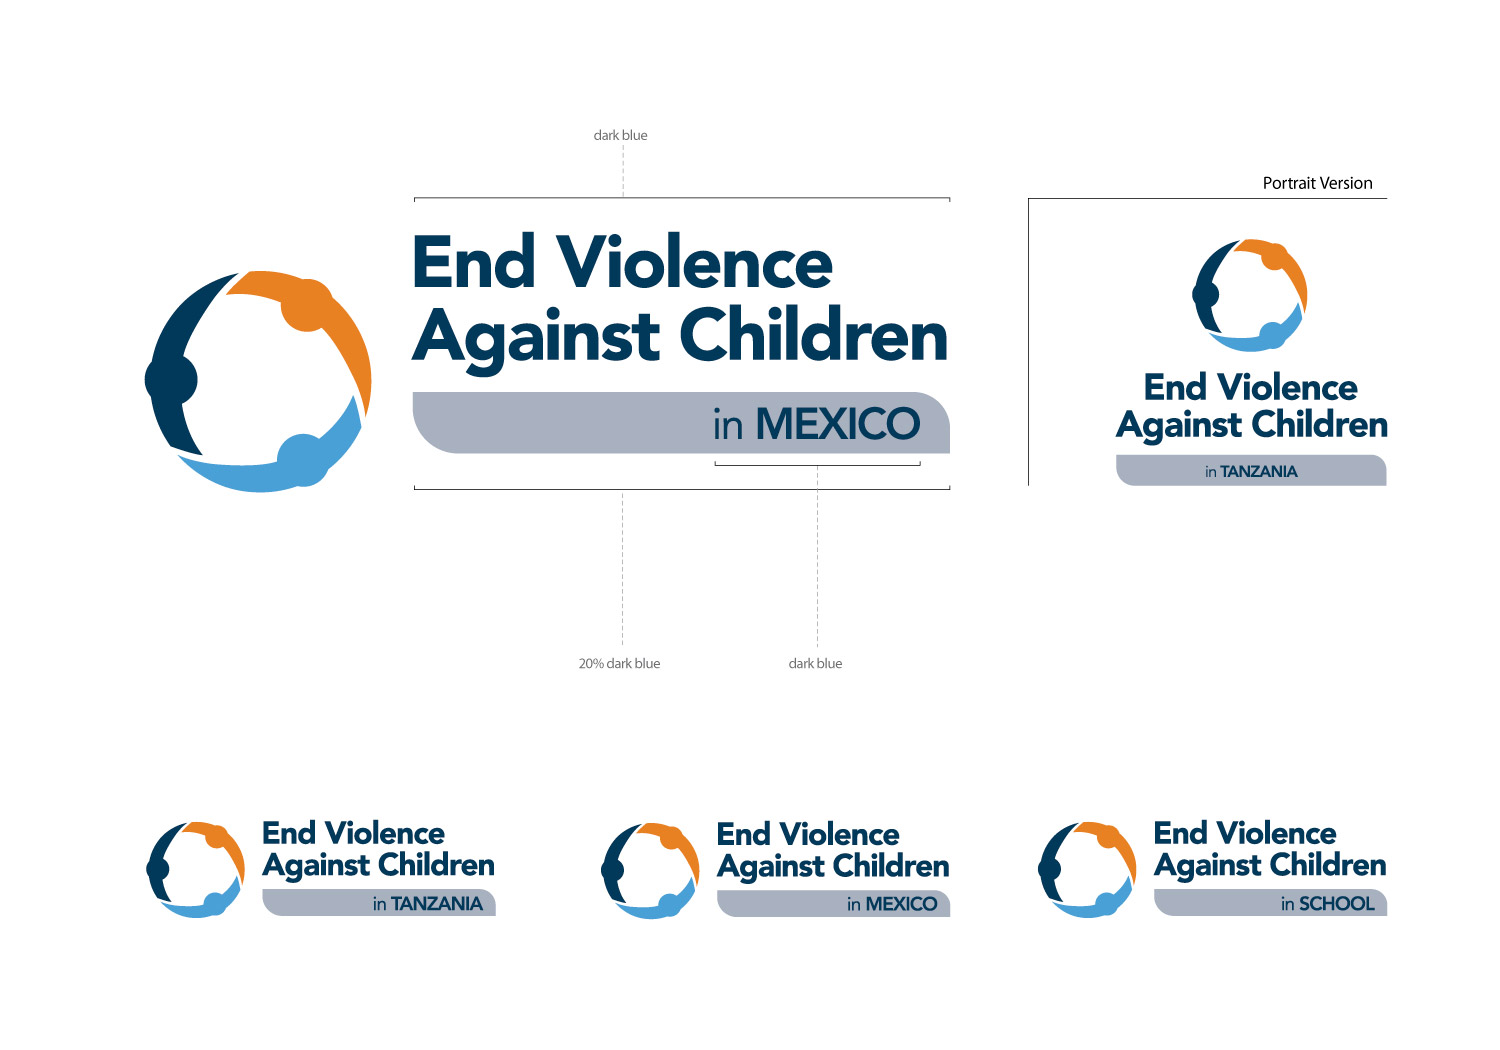 The Global Partnership to End Violence Against Children